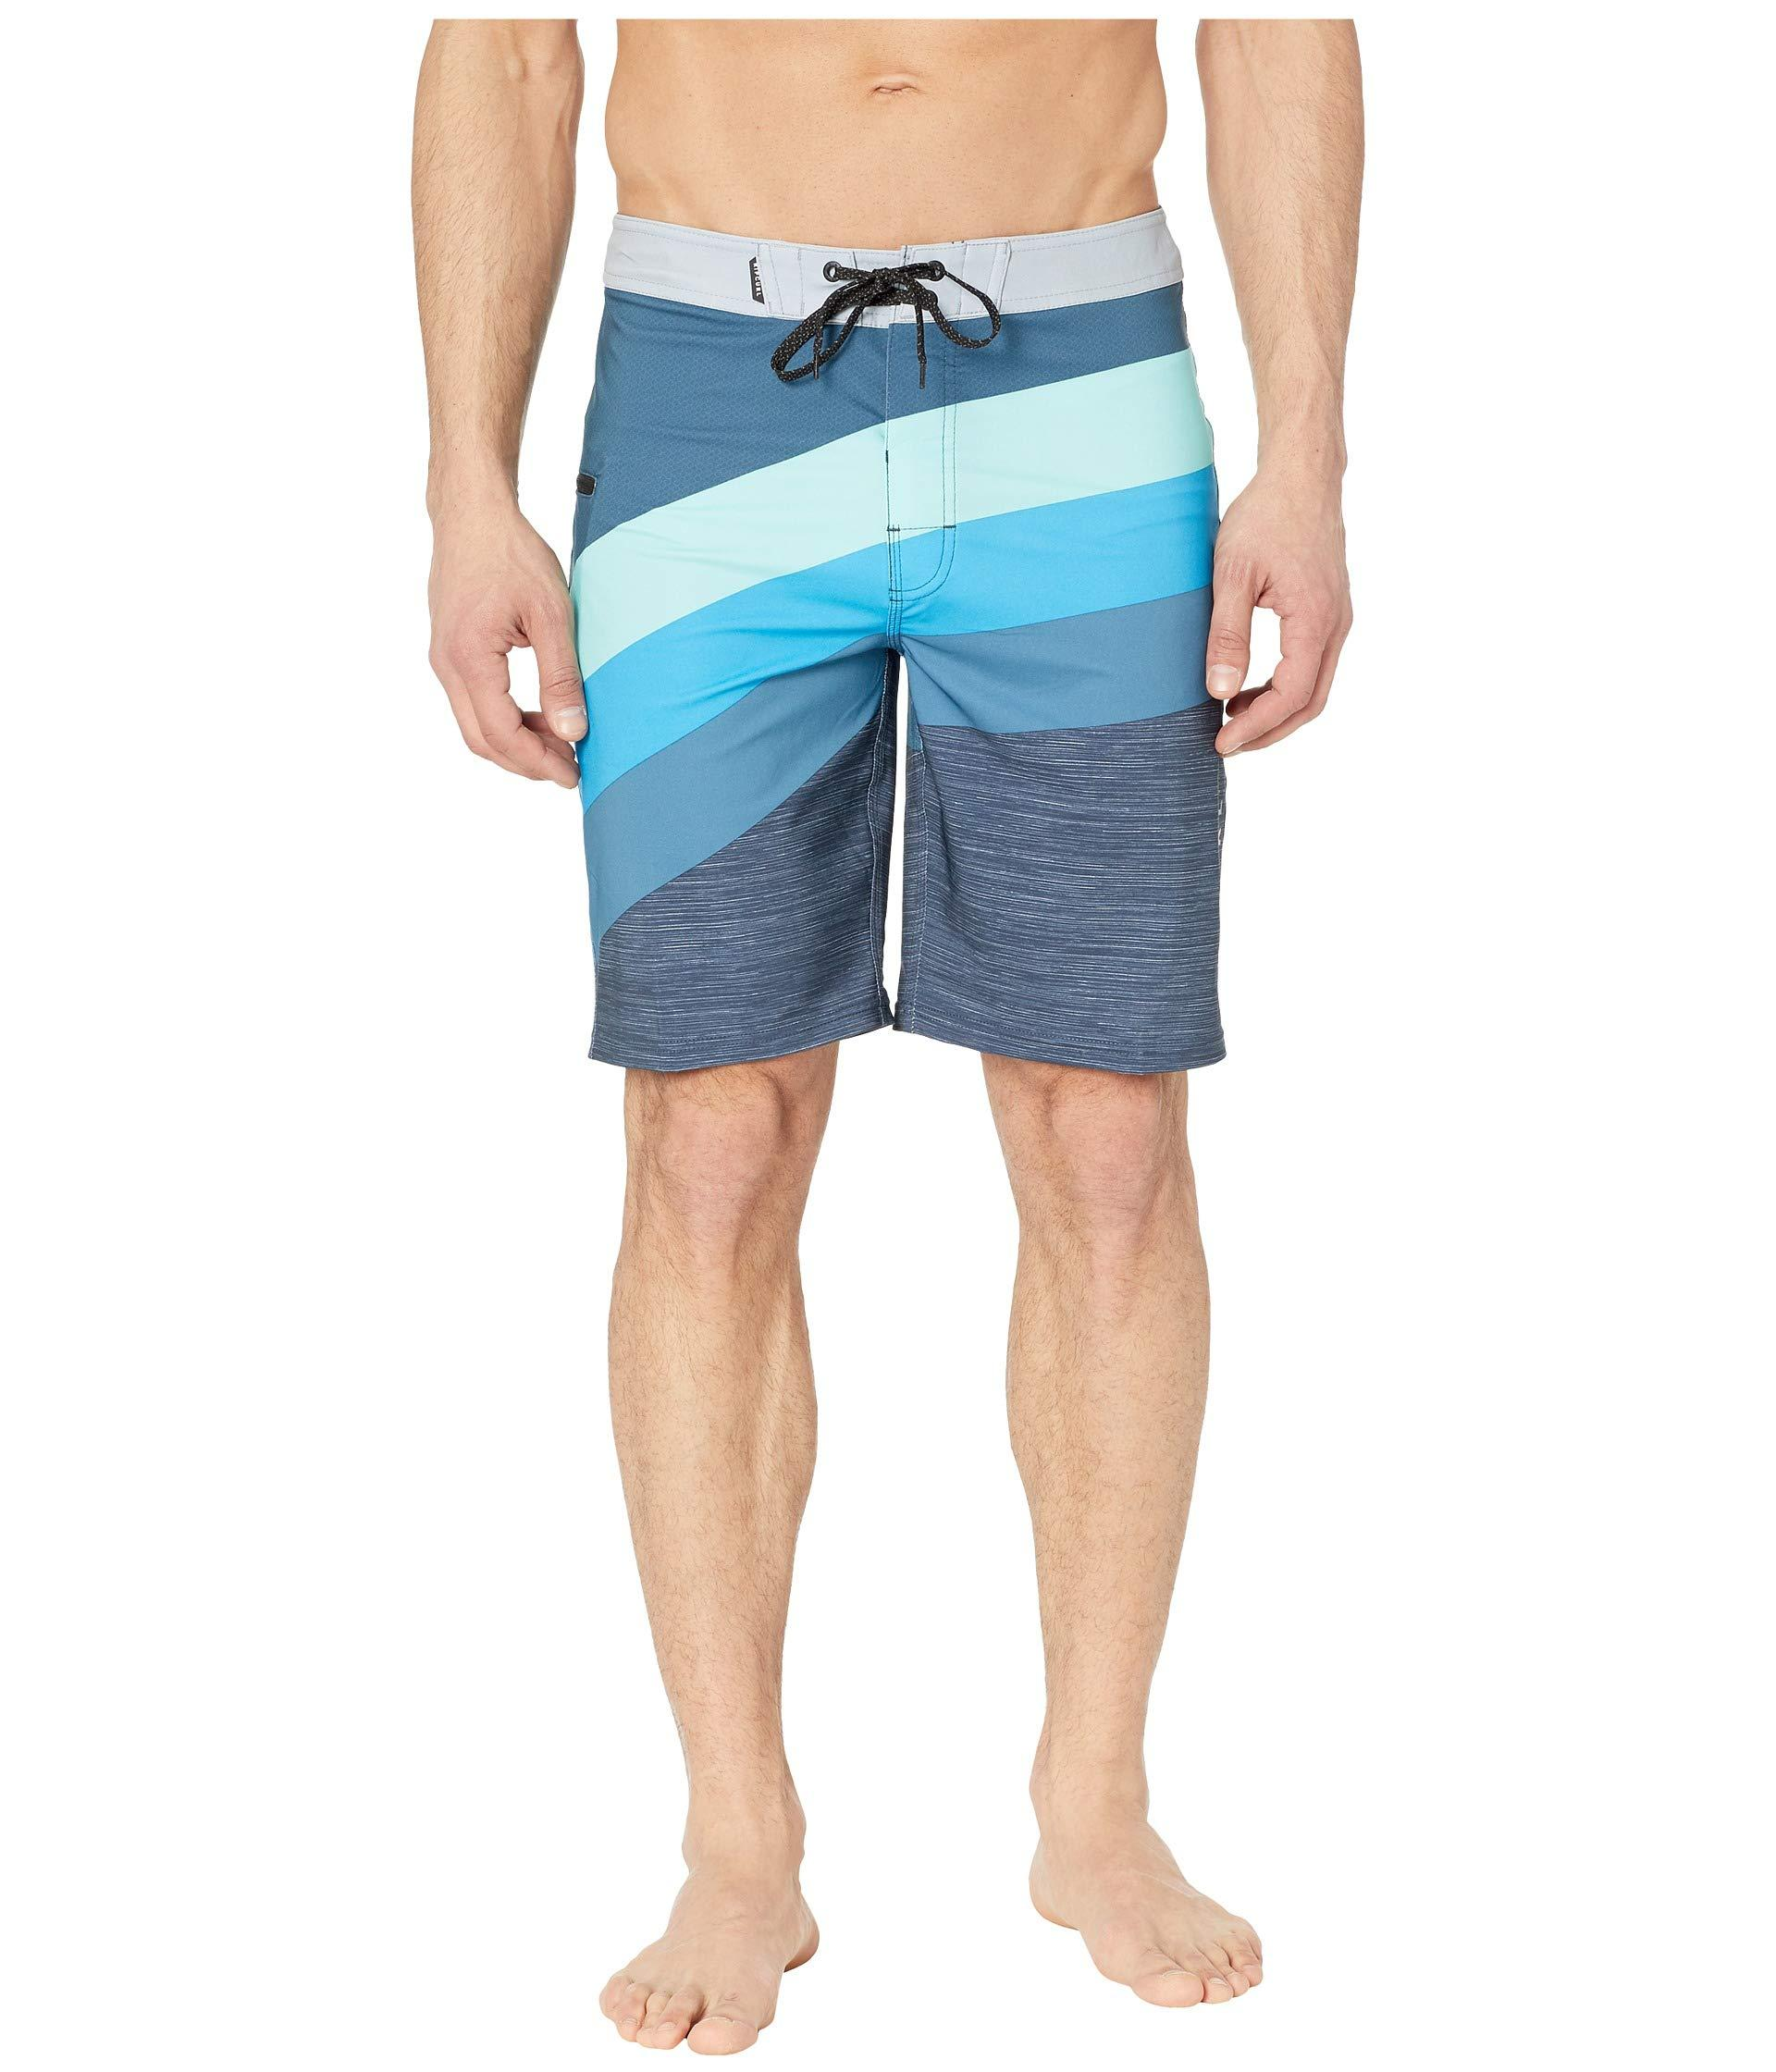 0d0012774b Lyst - Rip Curl Mirage React Boardshorts (blue) Men's Swimwear in ...